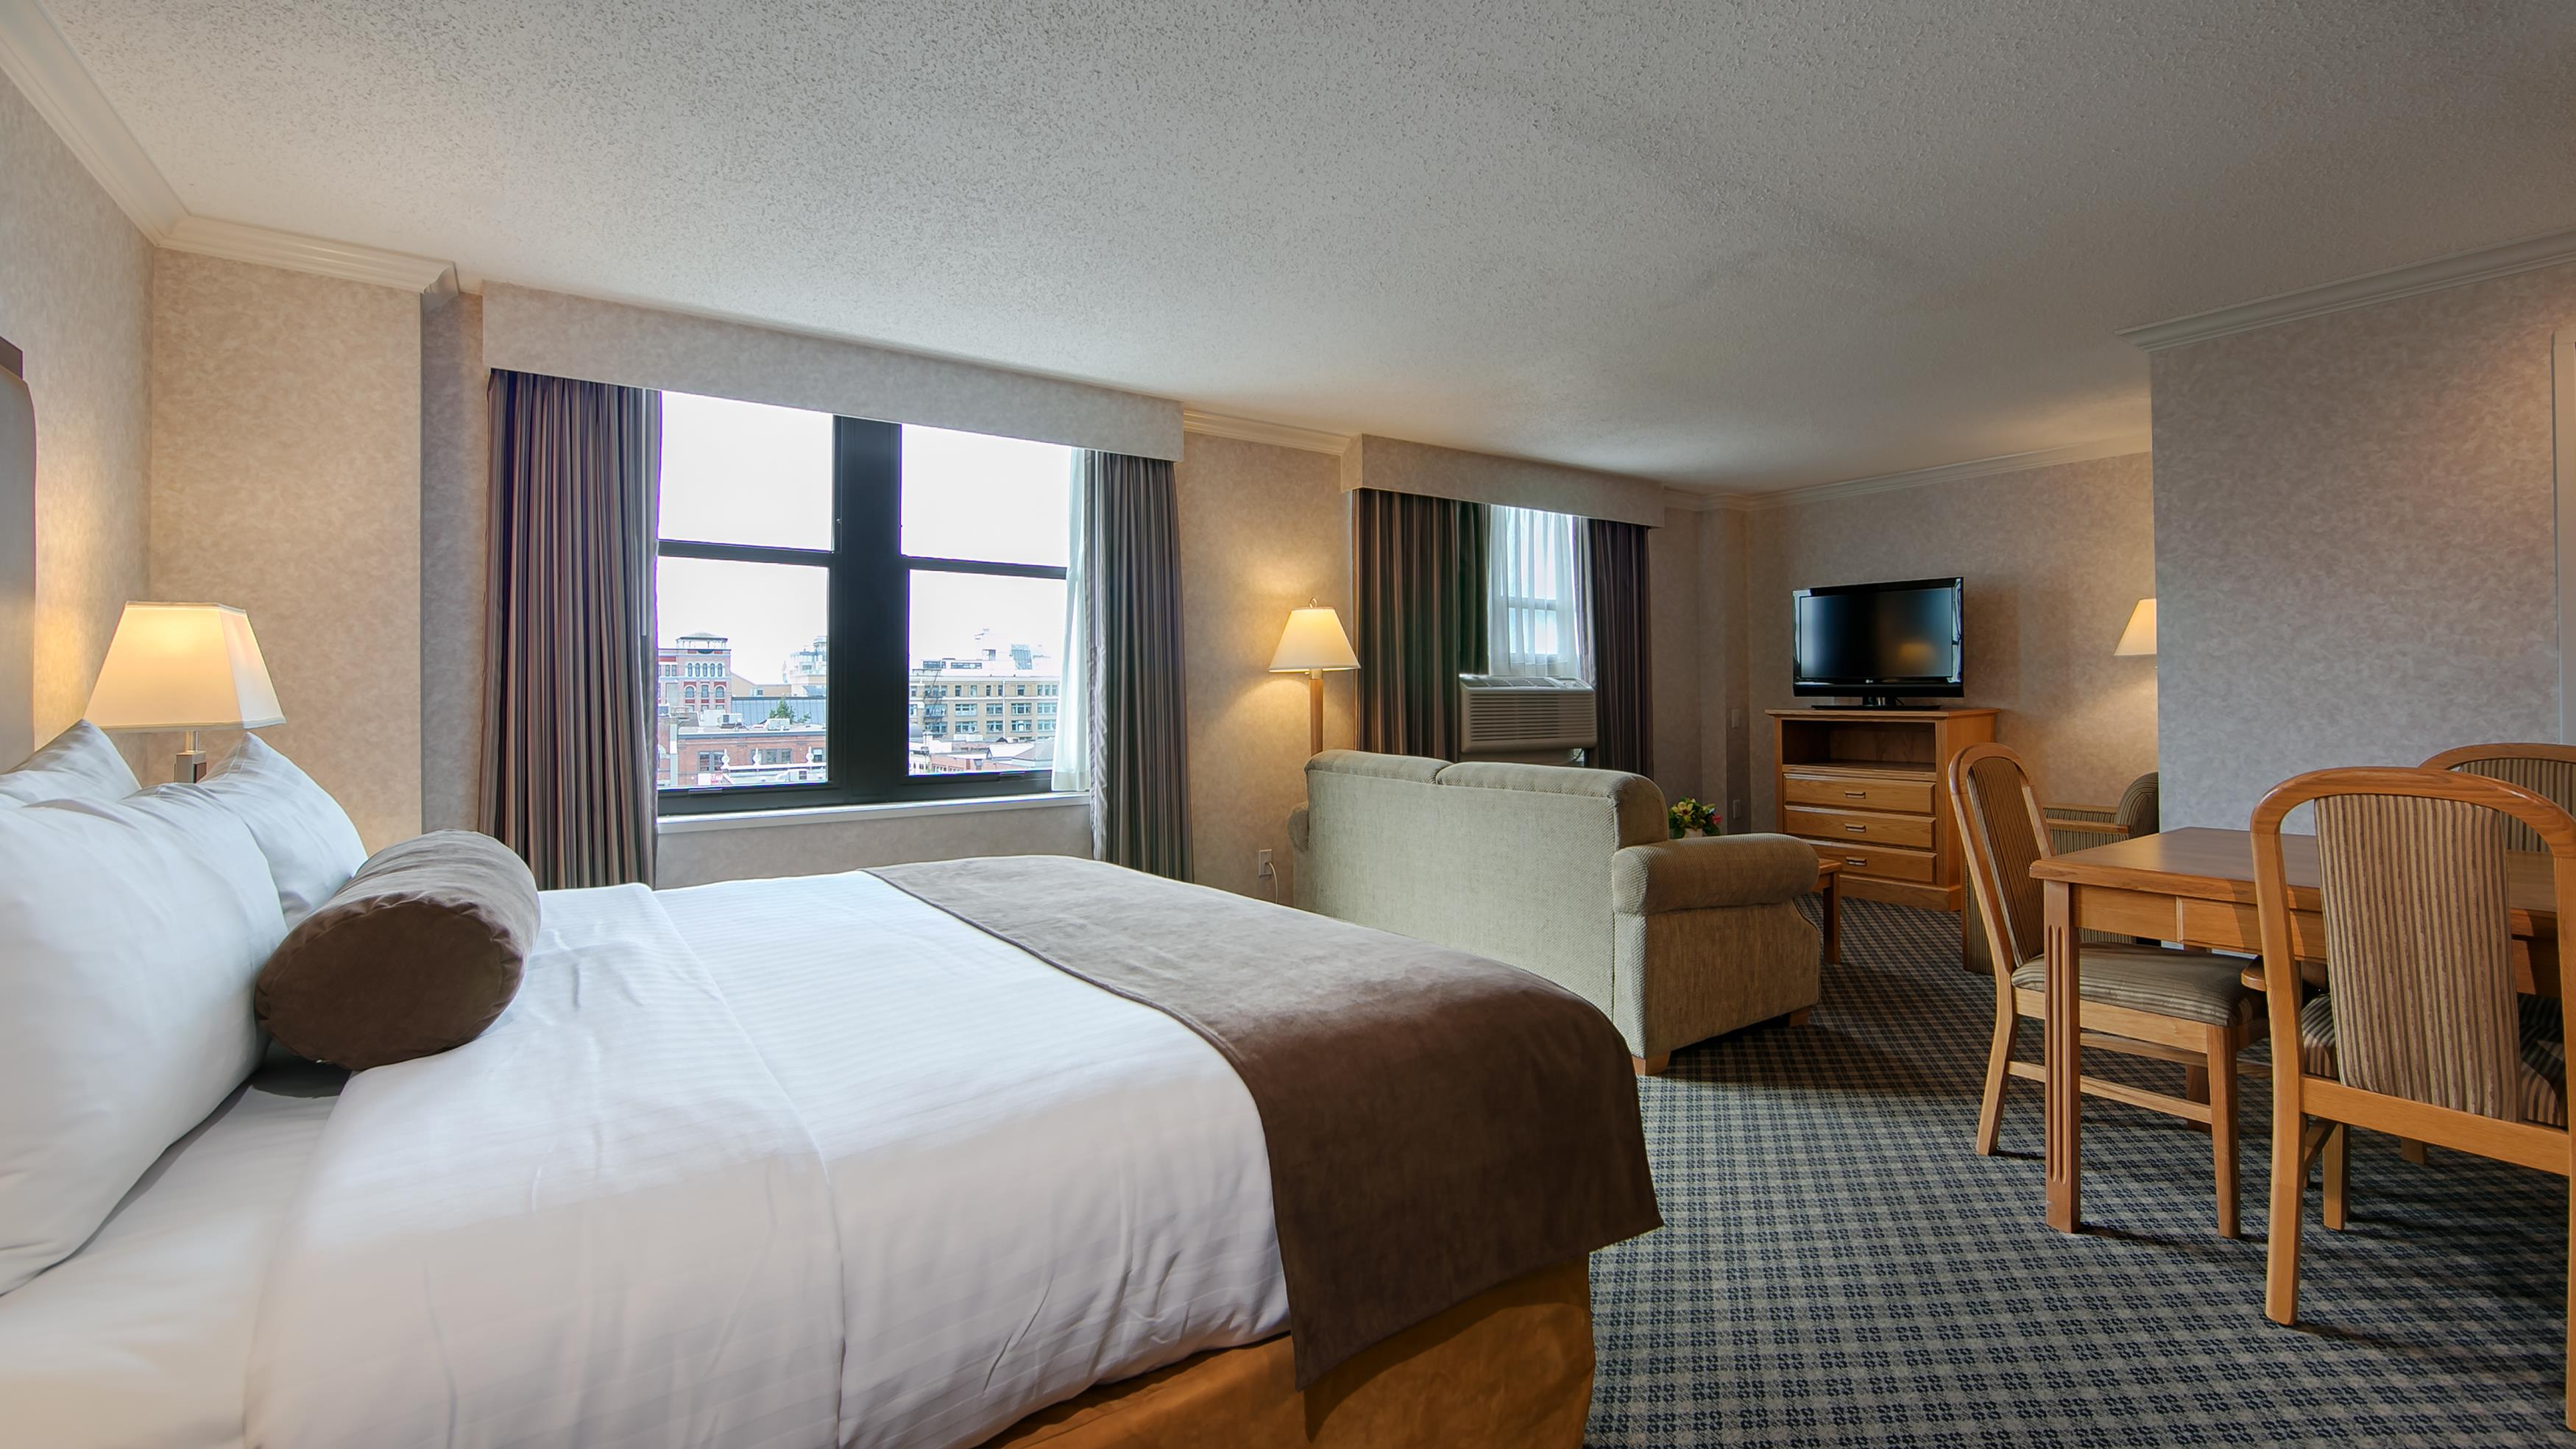 Best Western Plus Carlton Plaza Hotel in Victoria: Studio King Room